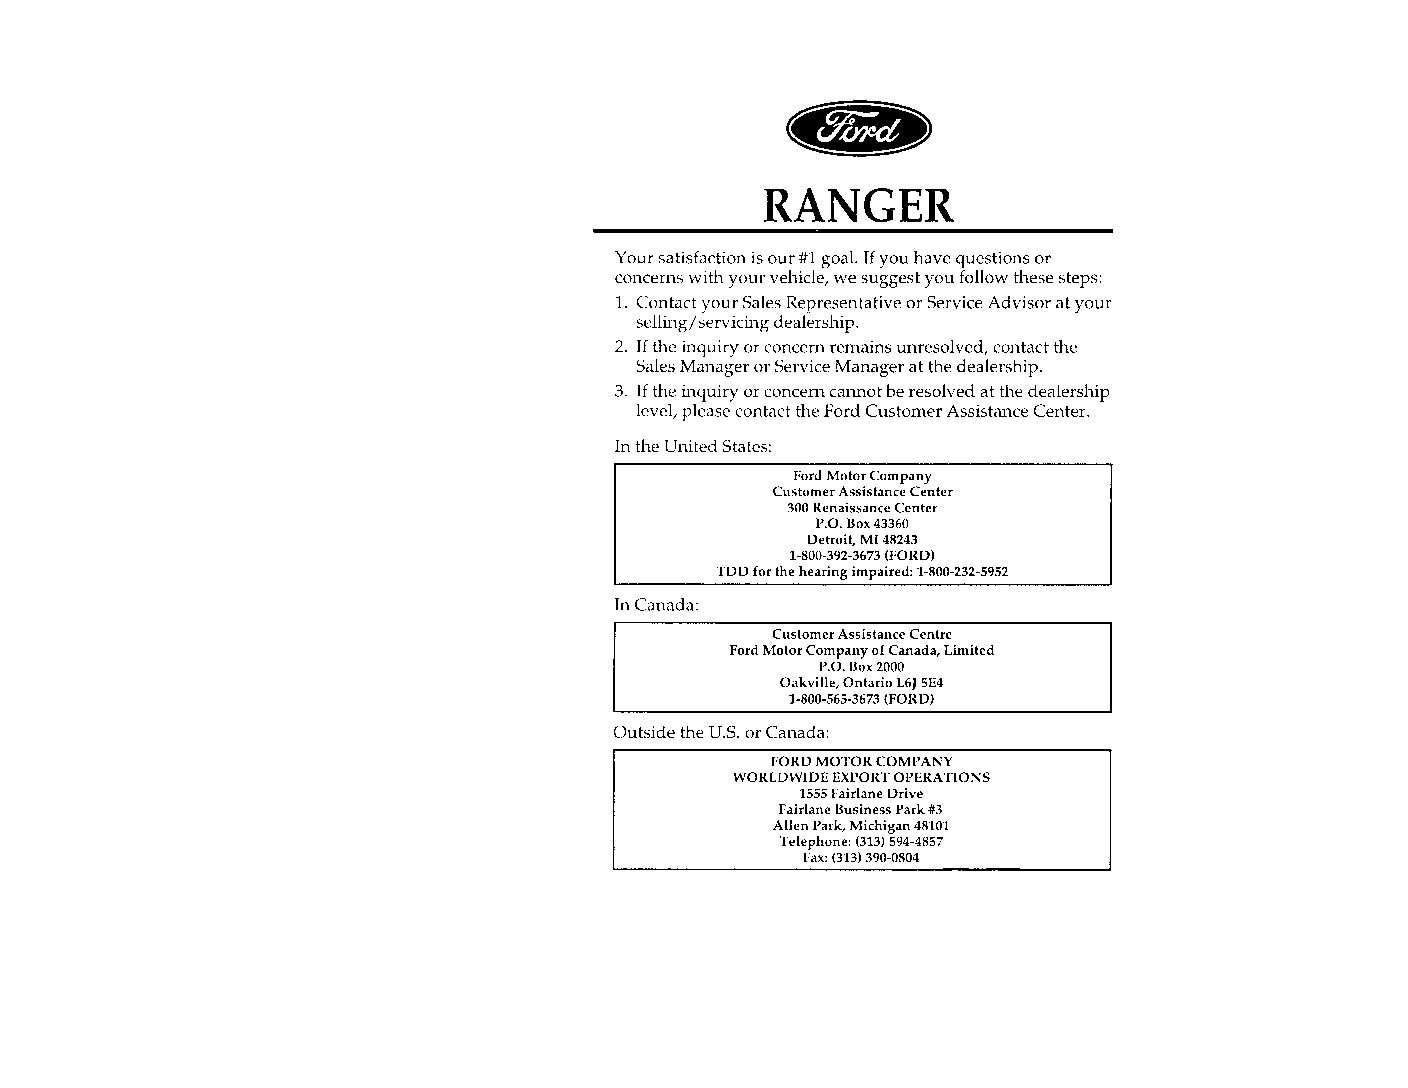 2004 ford ranger owners manual